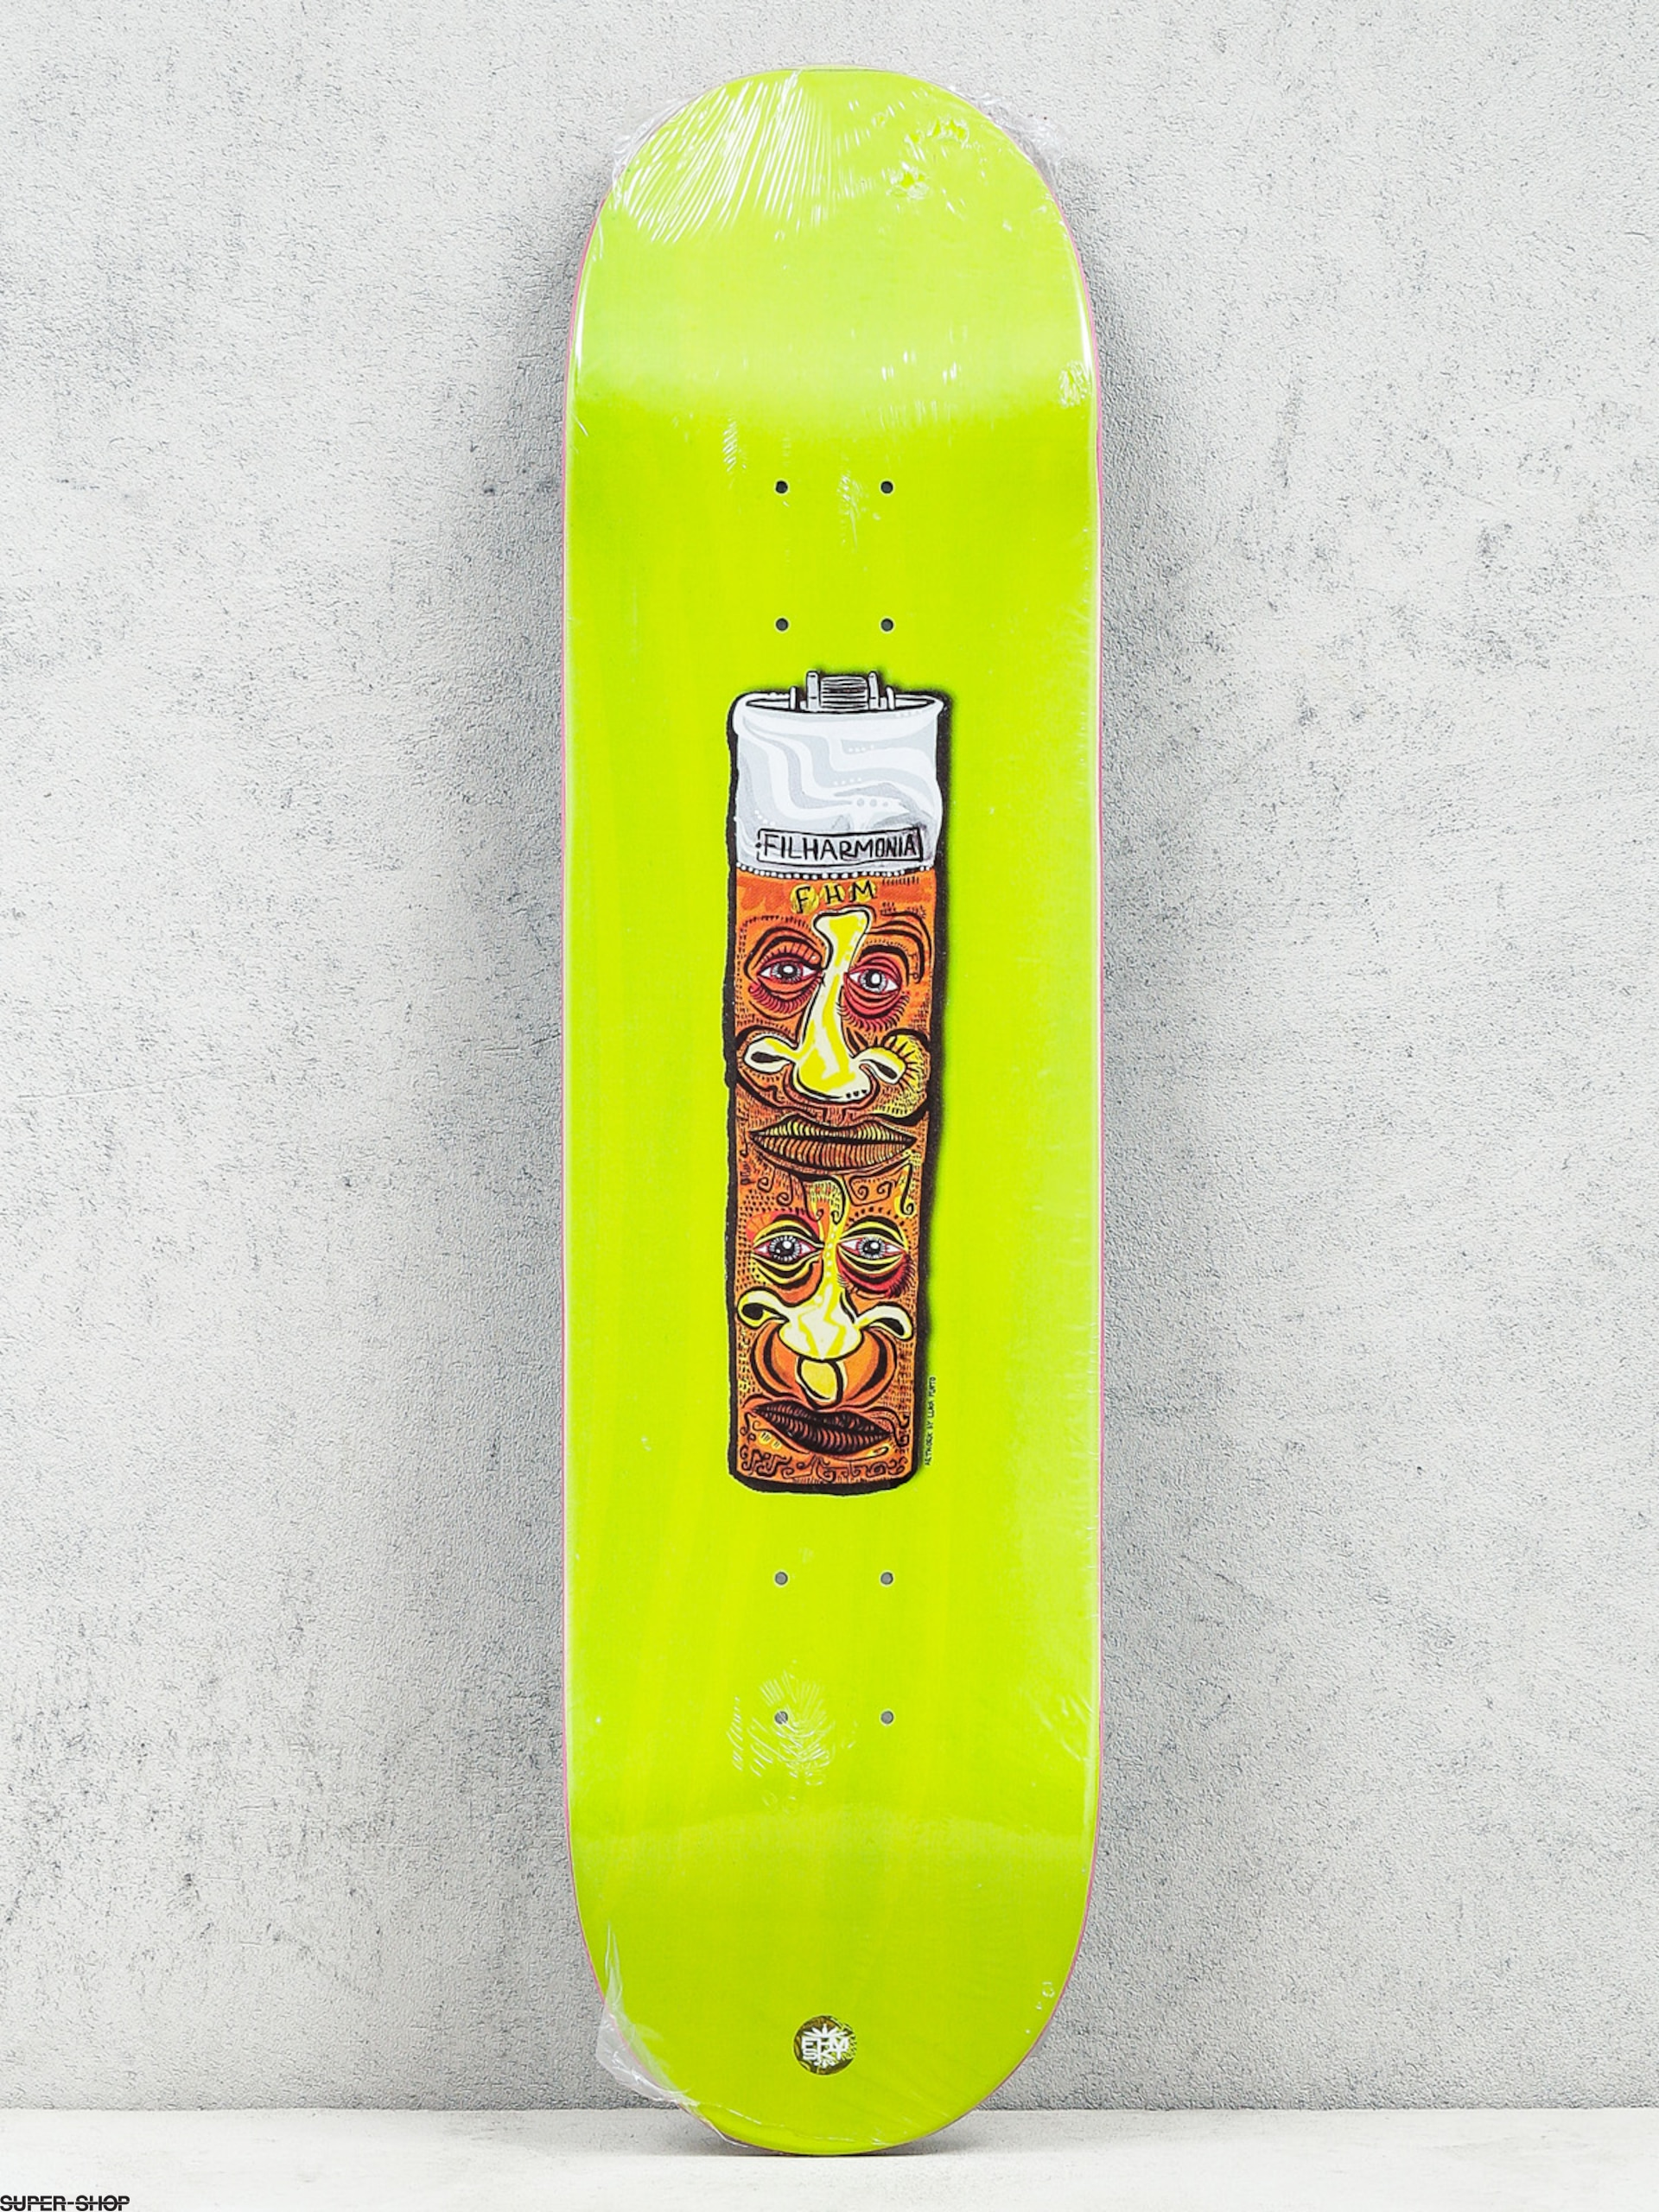 Filharmonia Deck Clippo (light green)